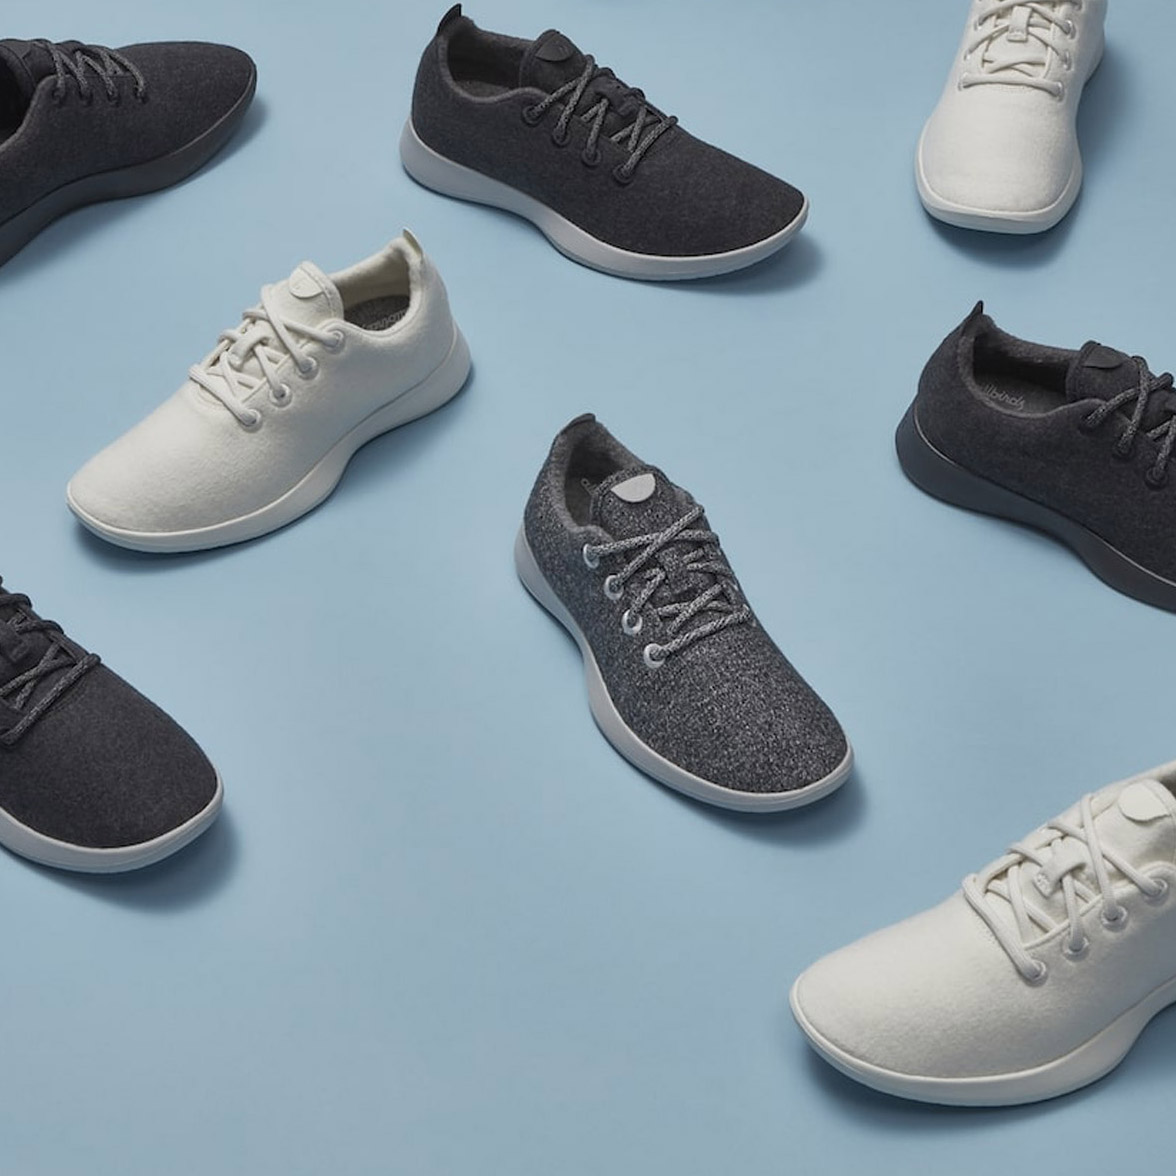 Allbirds crafts Wool Runners shoes from